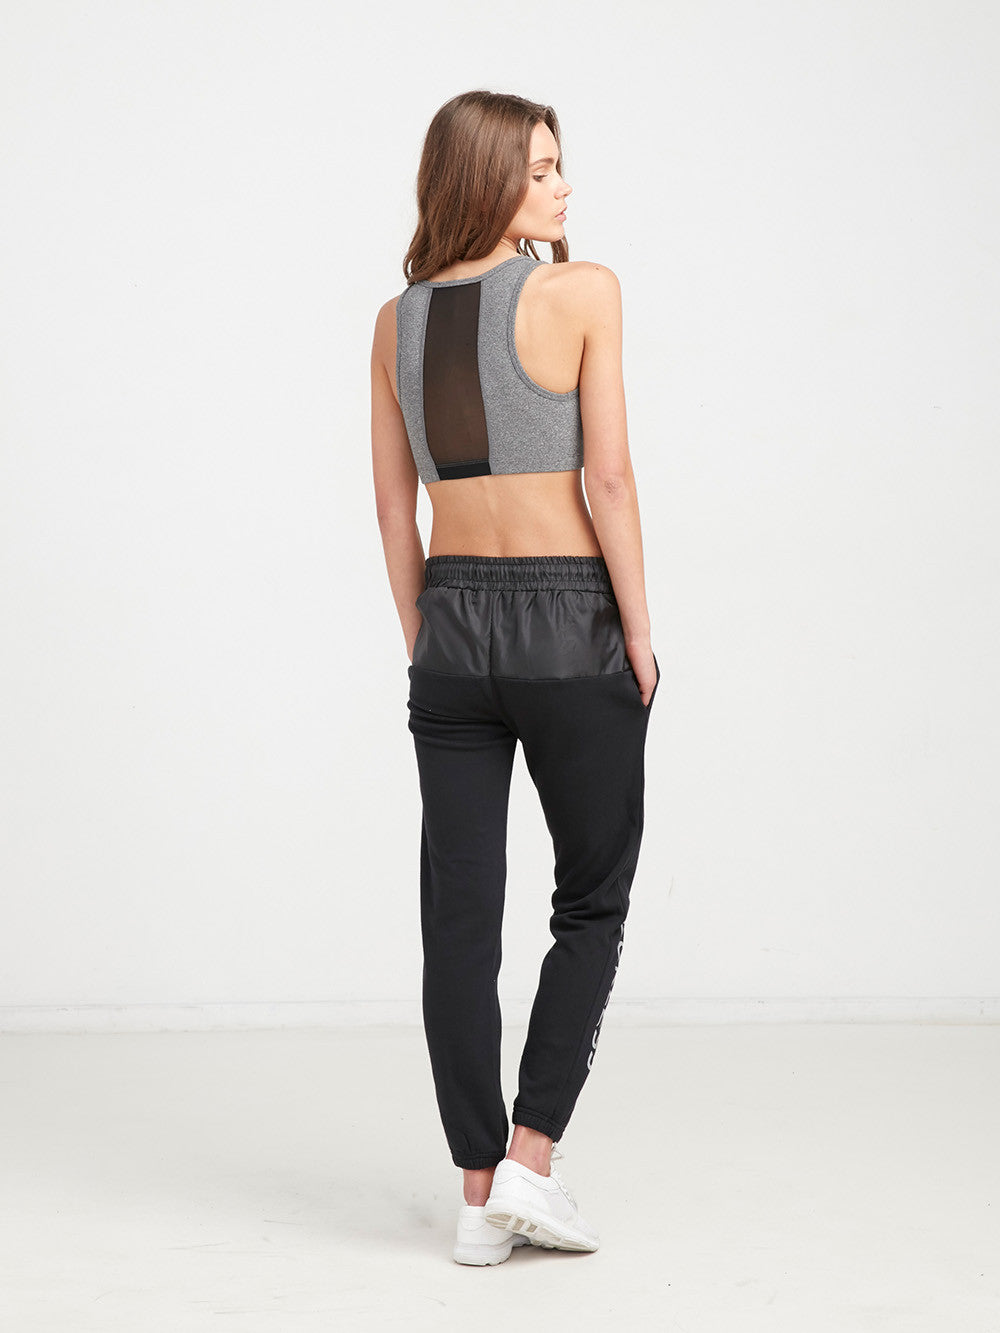 Shutter Tactic Sports Bra